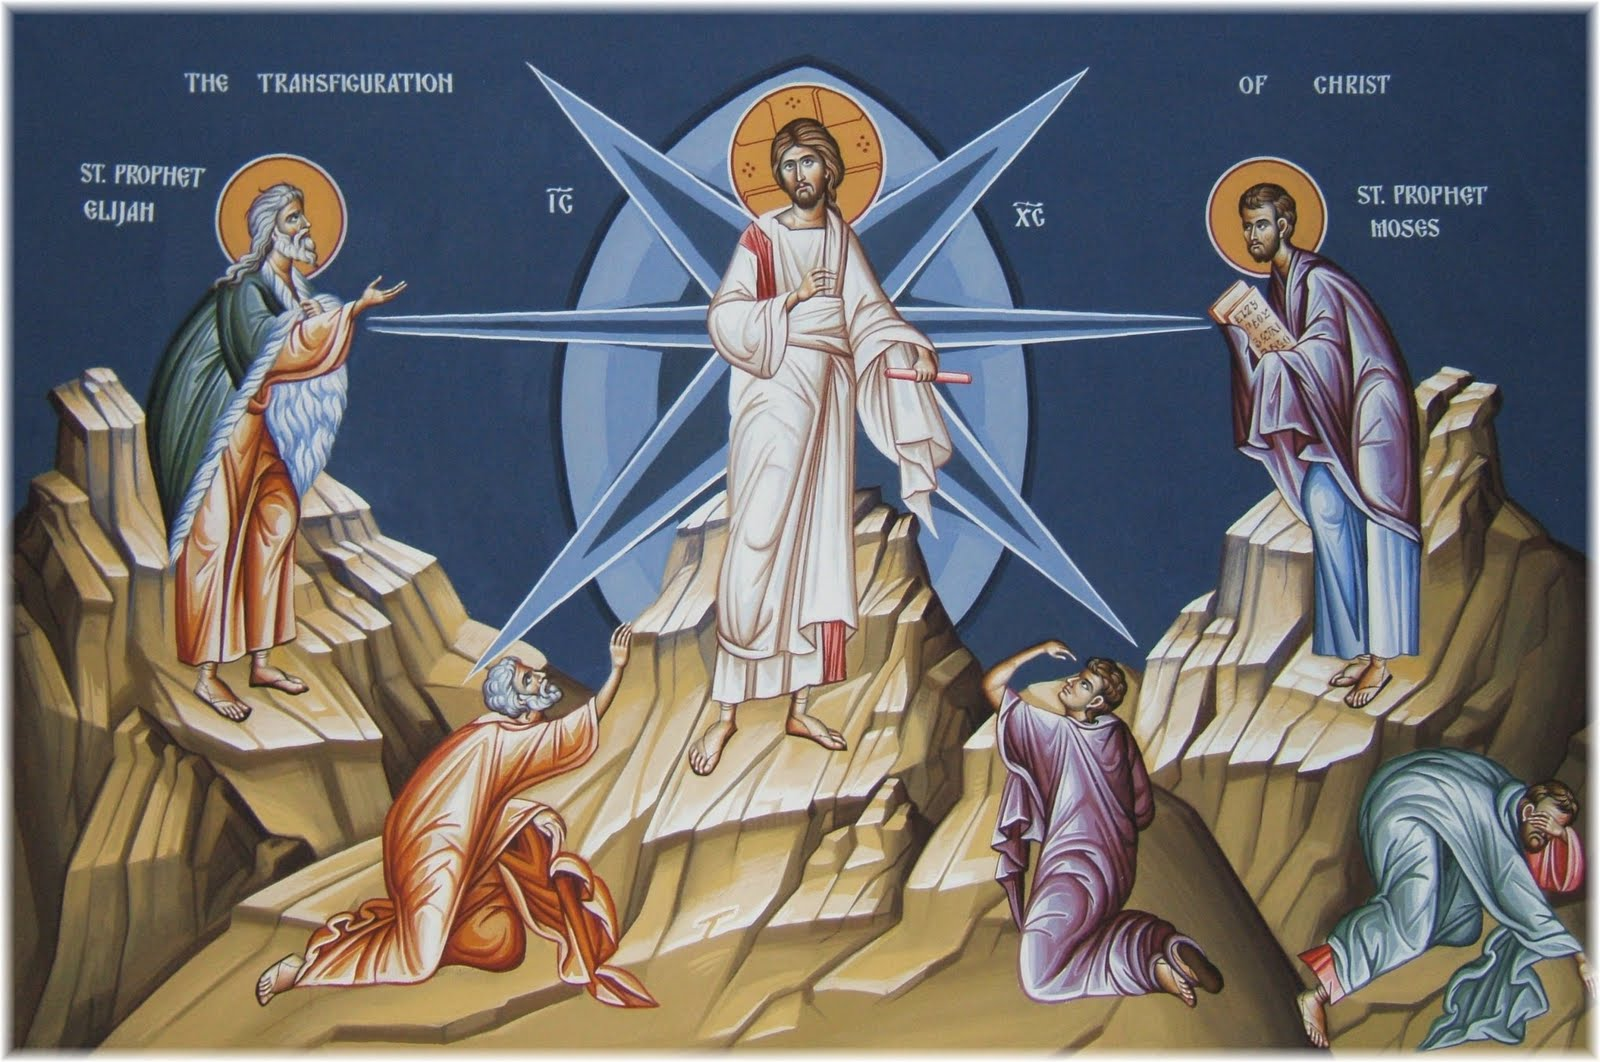 Aug 11; Ninth Sunday after Pentecost, Octoechos Tone 8; Post-feast of the Transfiguration; Holy Martyr Euplus (304)